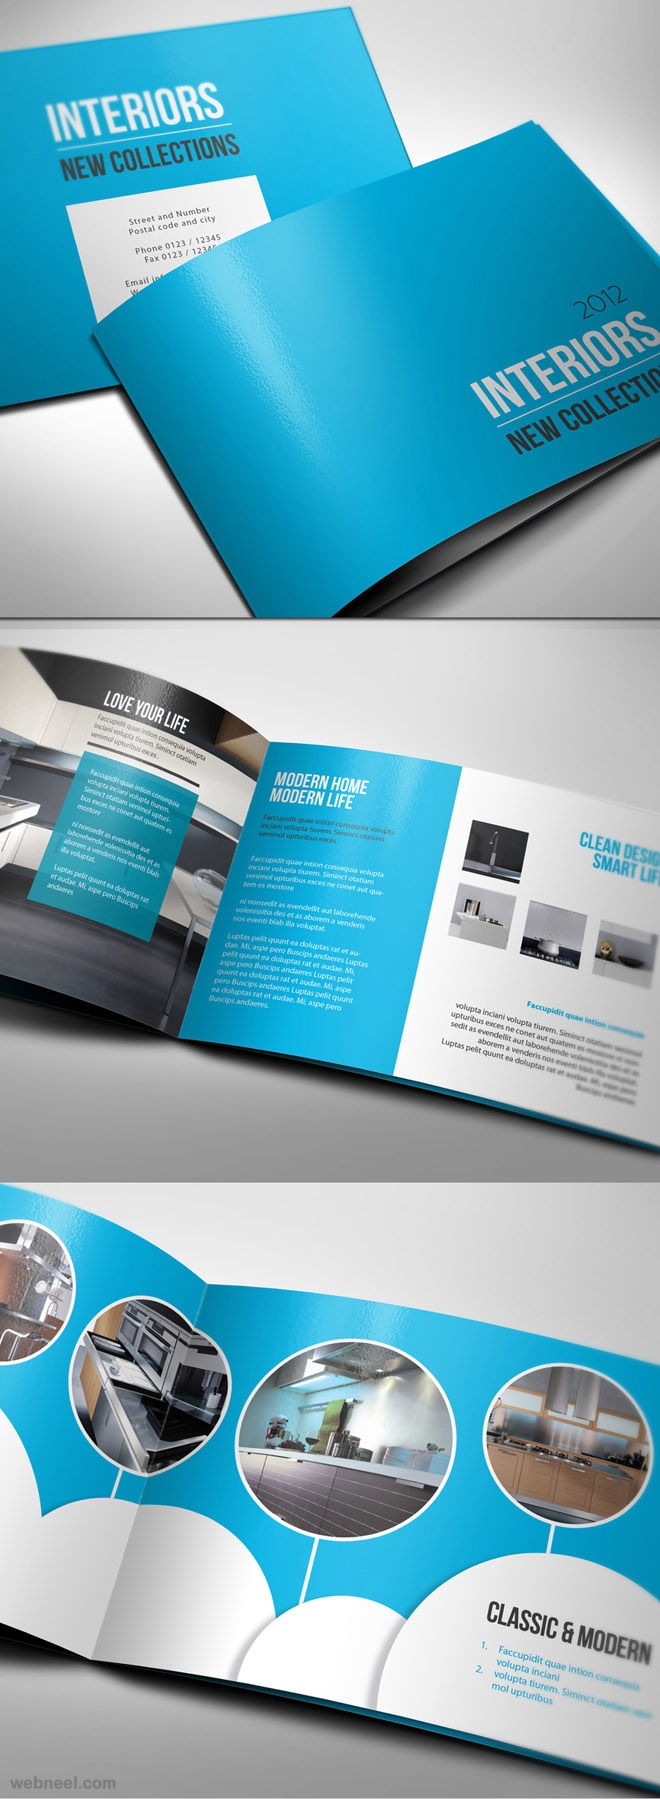 26 best and creative brochure design ideas for your inspiration part 3 - Www heytens be catalogue ...